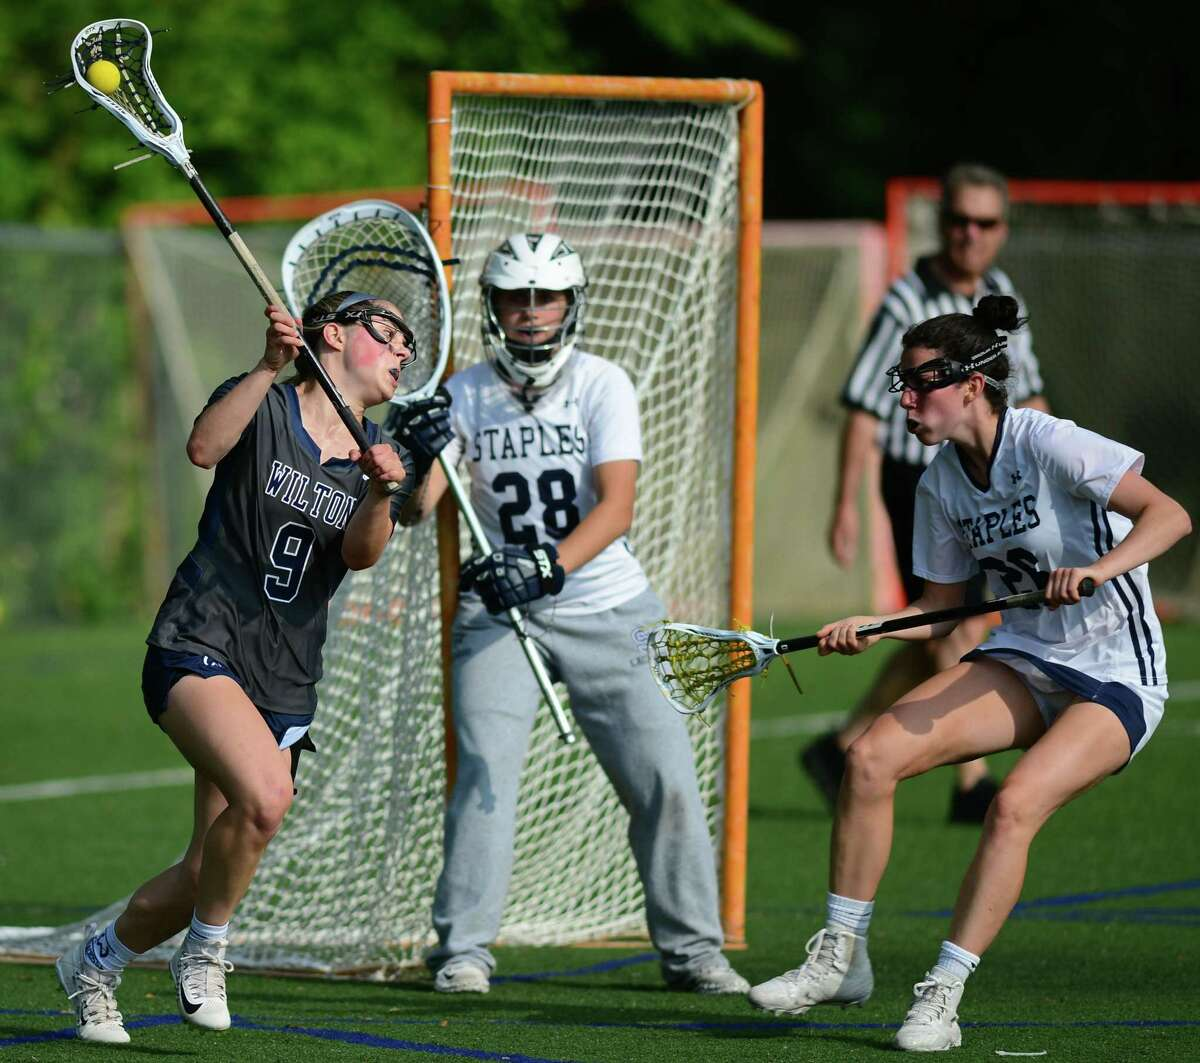 Warrior #9 Sophia Sudano looks to shoot on goal tended by Wrecker #28 Sara DiGiovanni as the Staples High School Wreckers take on the Wilton High School Warriors in their CIAC Class L girls lacrosse state tournament quarterfinal game at Staples High School in Westport, Conn.